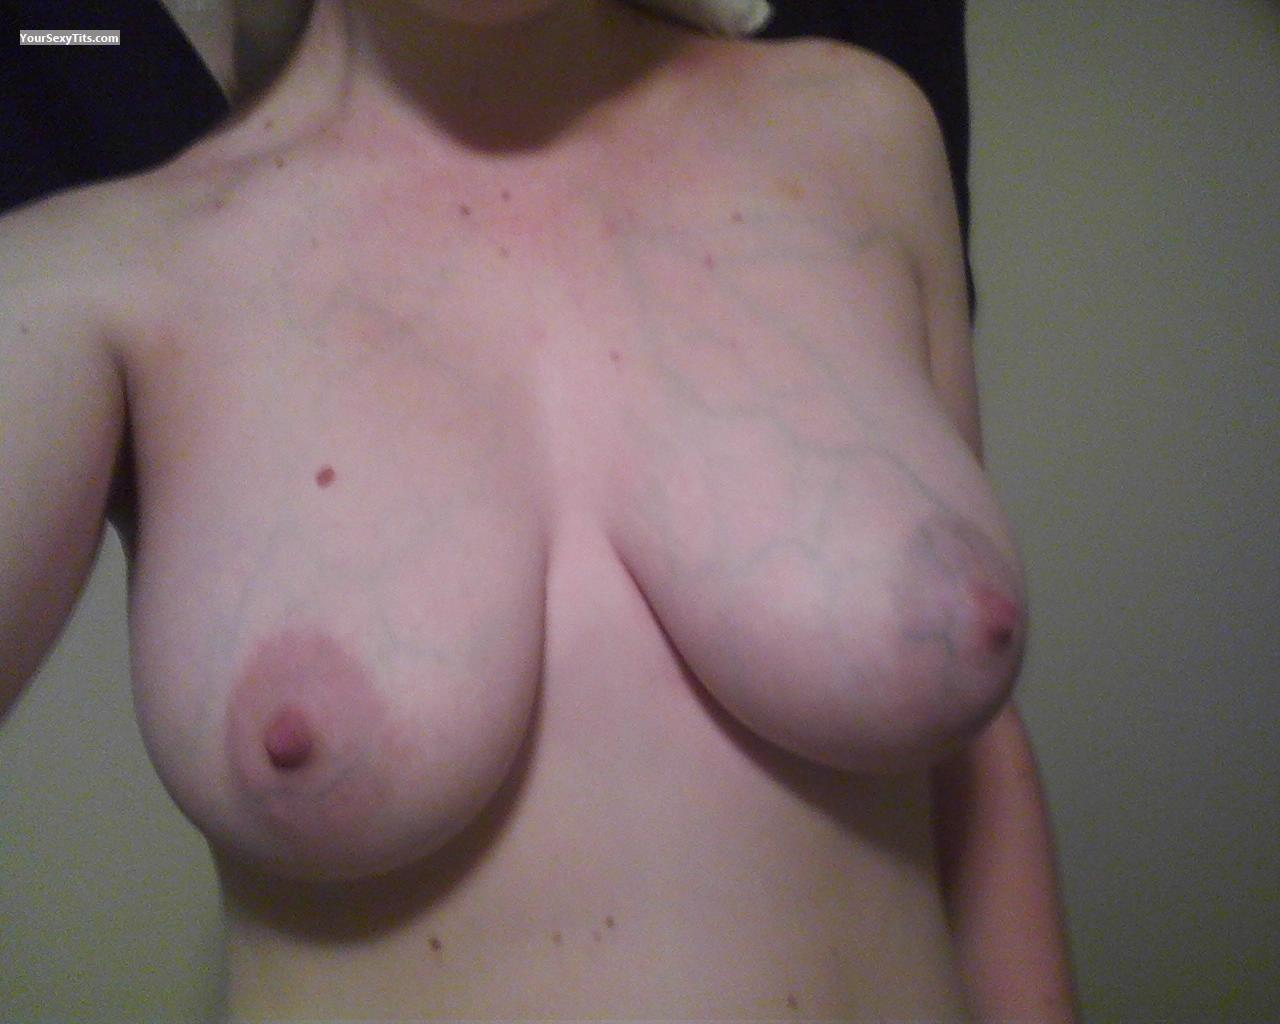 Medium Tits Of A Friend Selfie by Ronnie